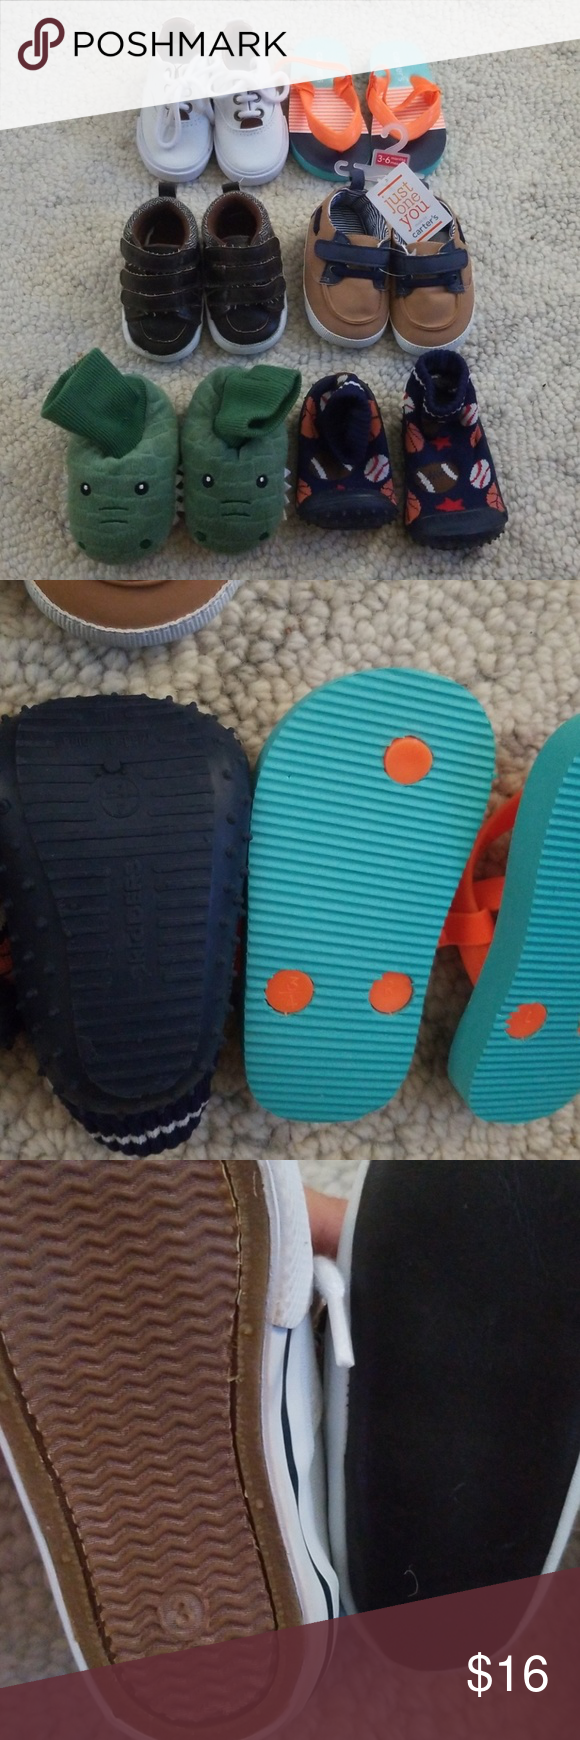 Baby slippers, sandals, shoes size 3/ 4